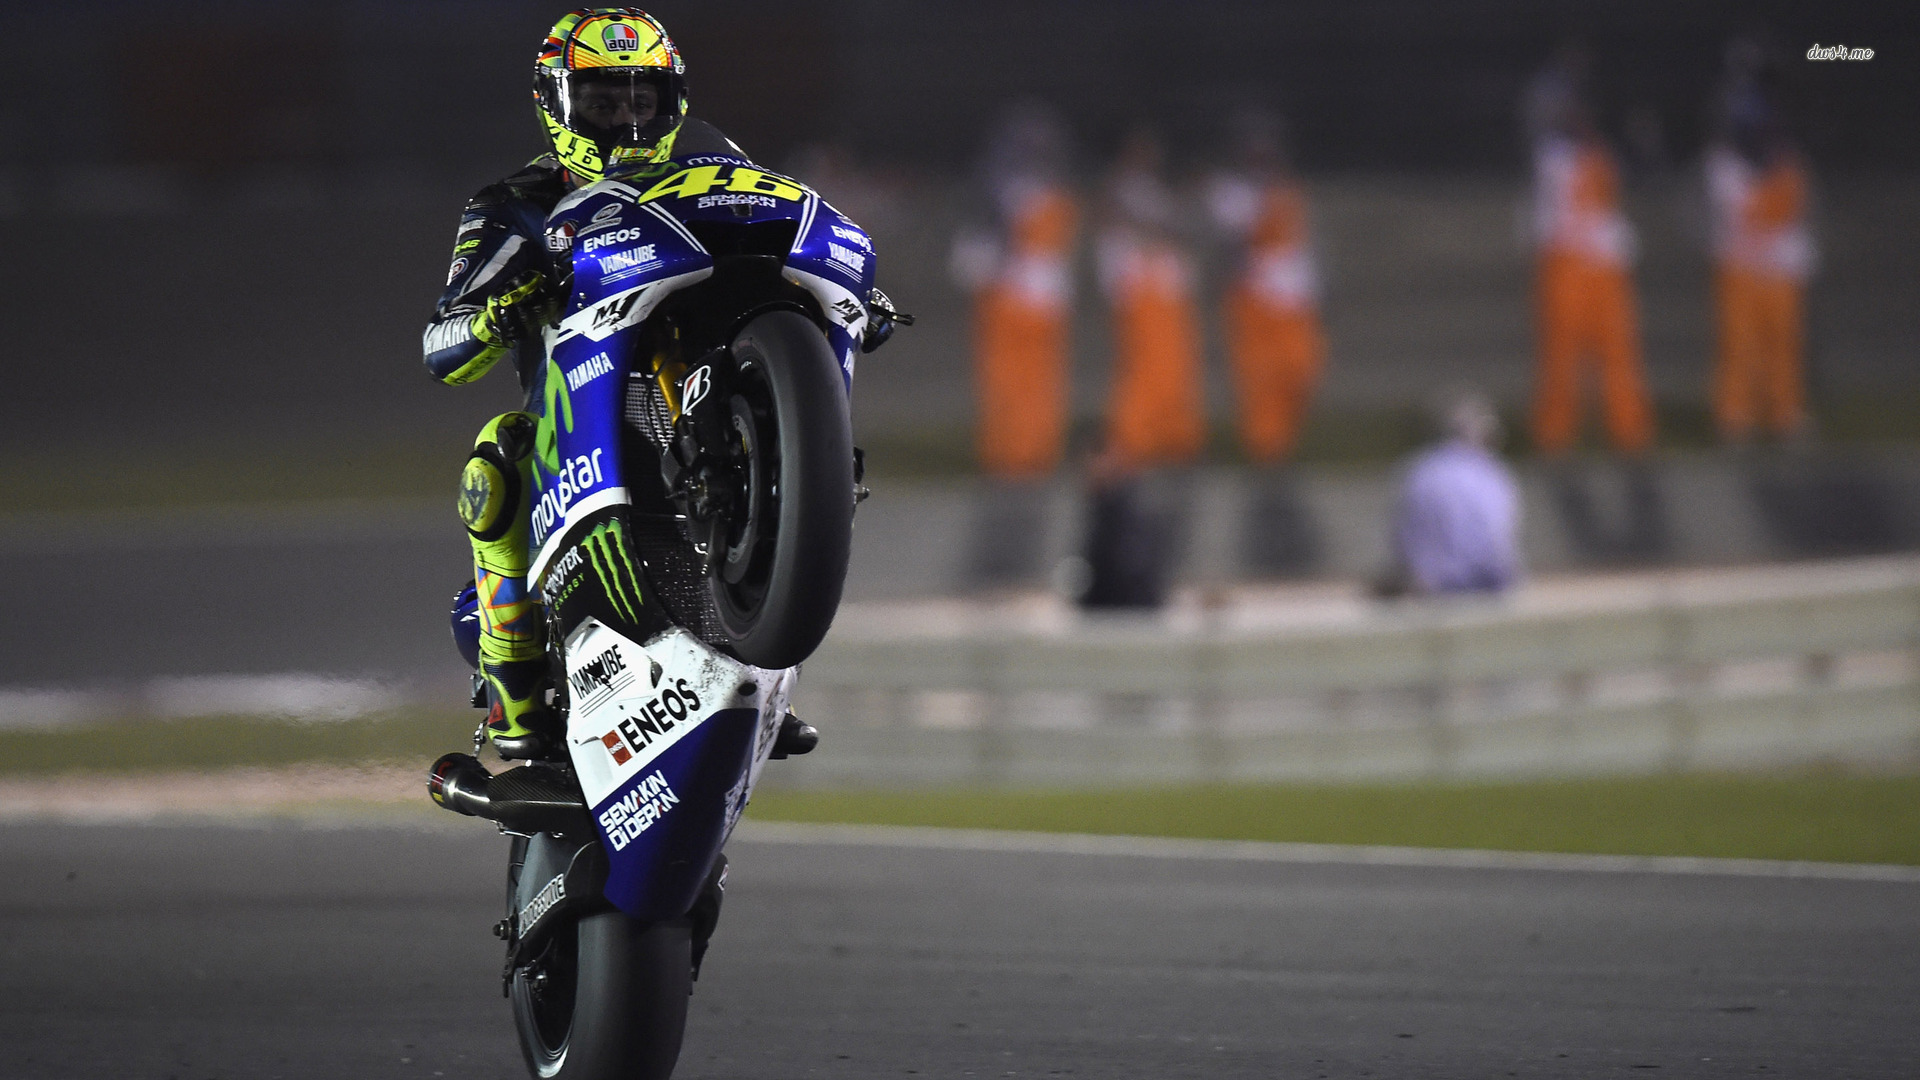 Collection Of Wallpaper Valentino Rossi On Hdwallpapers 1920x1080